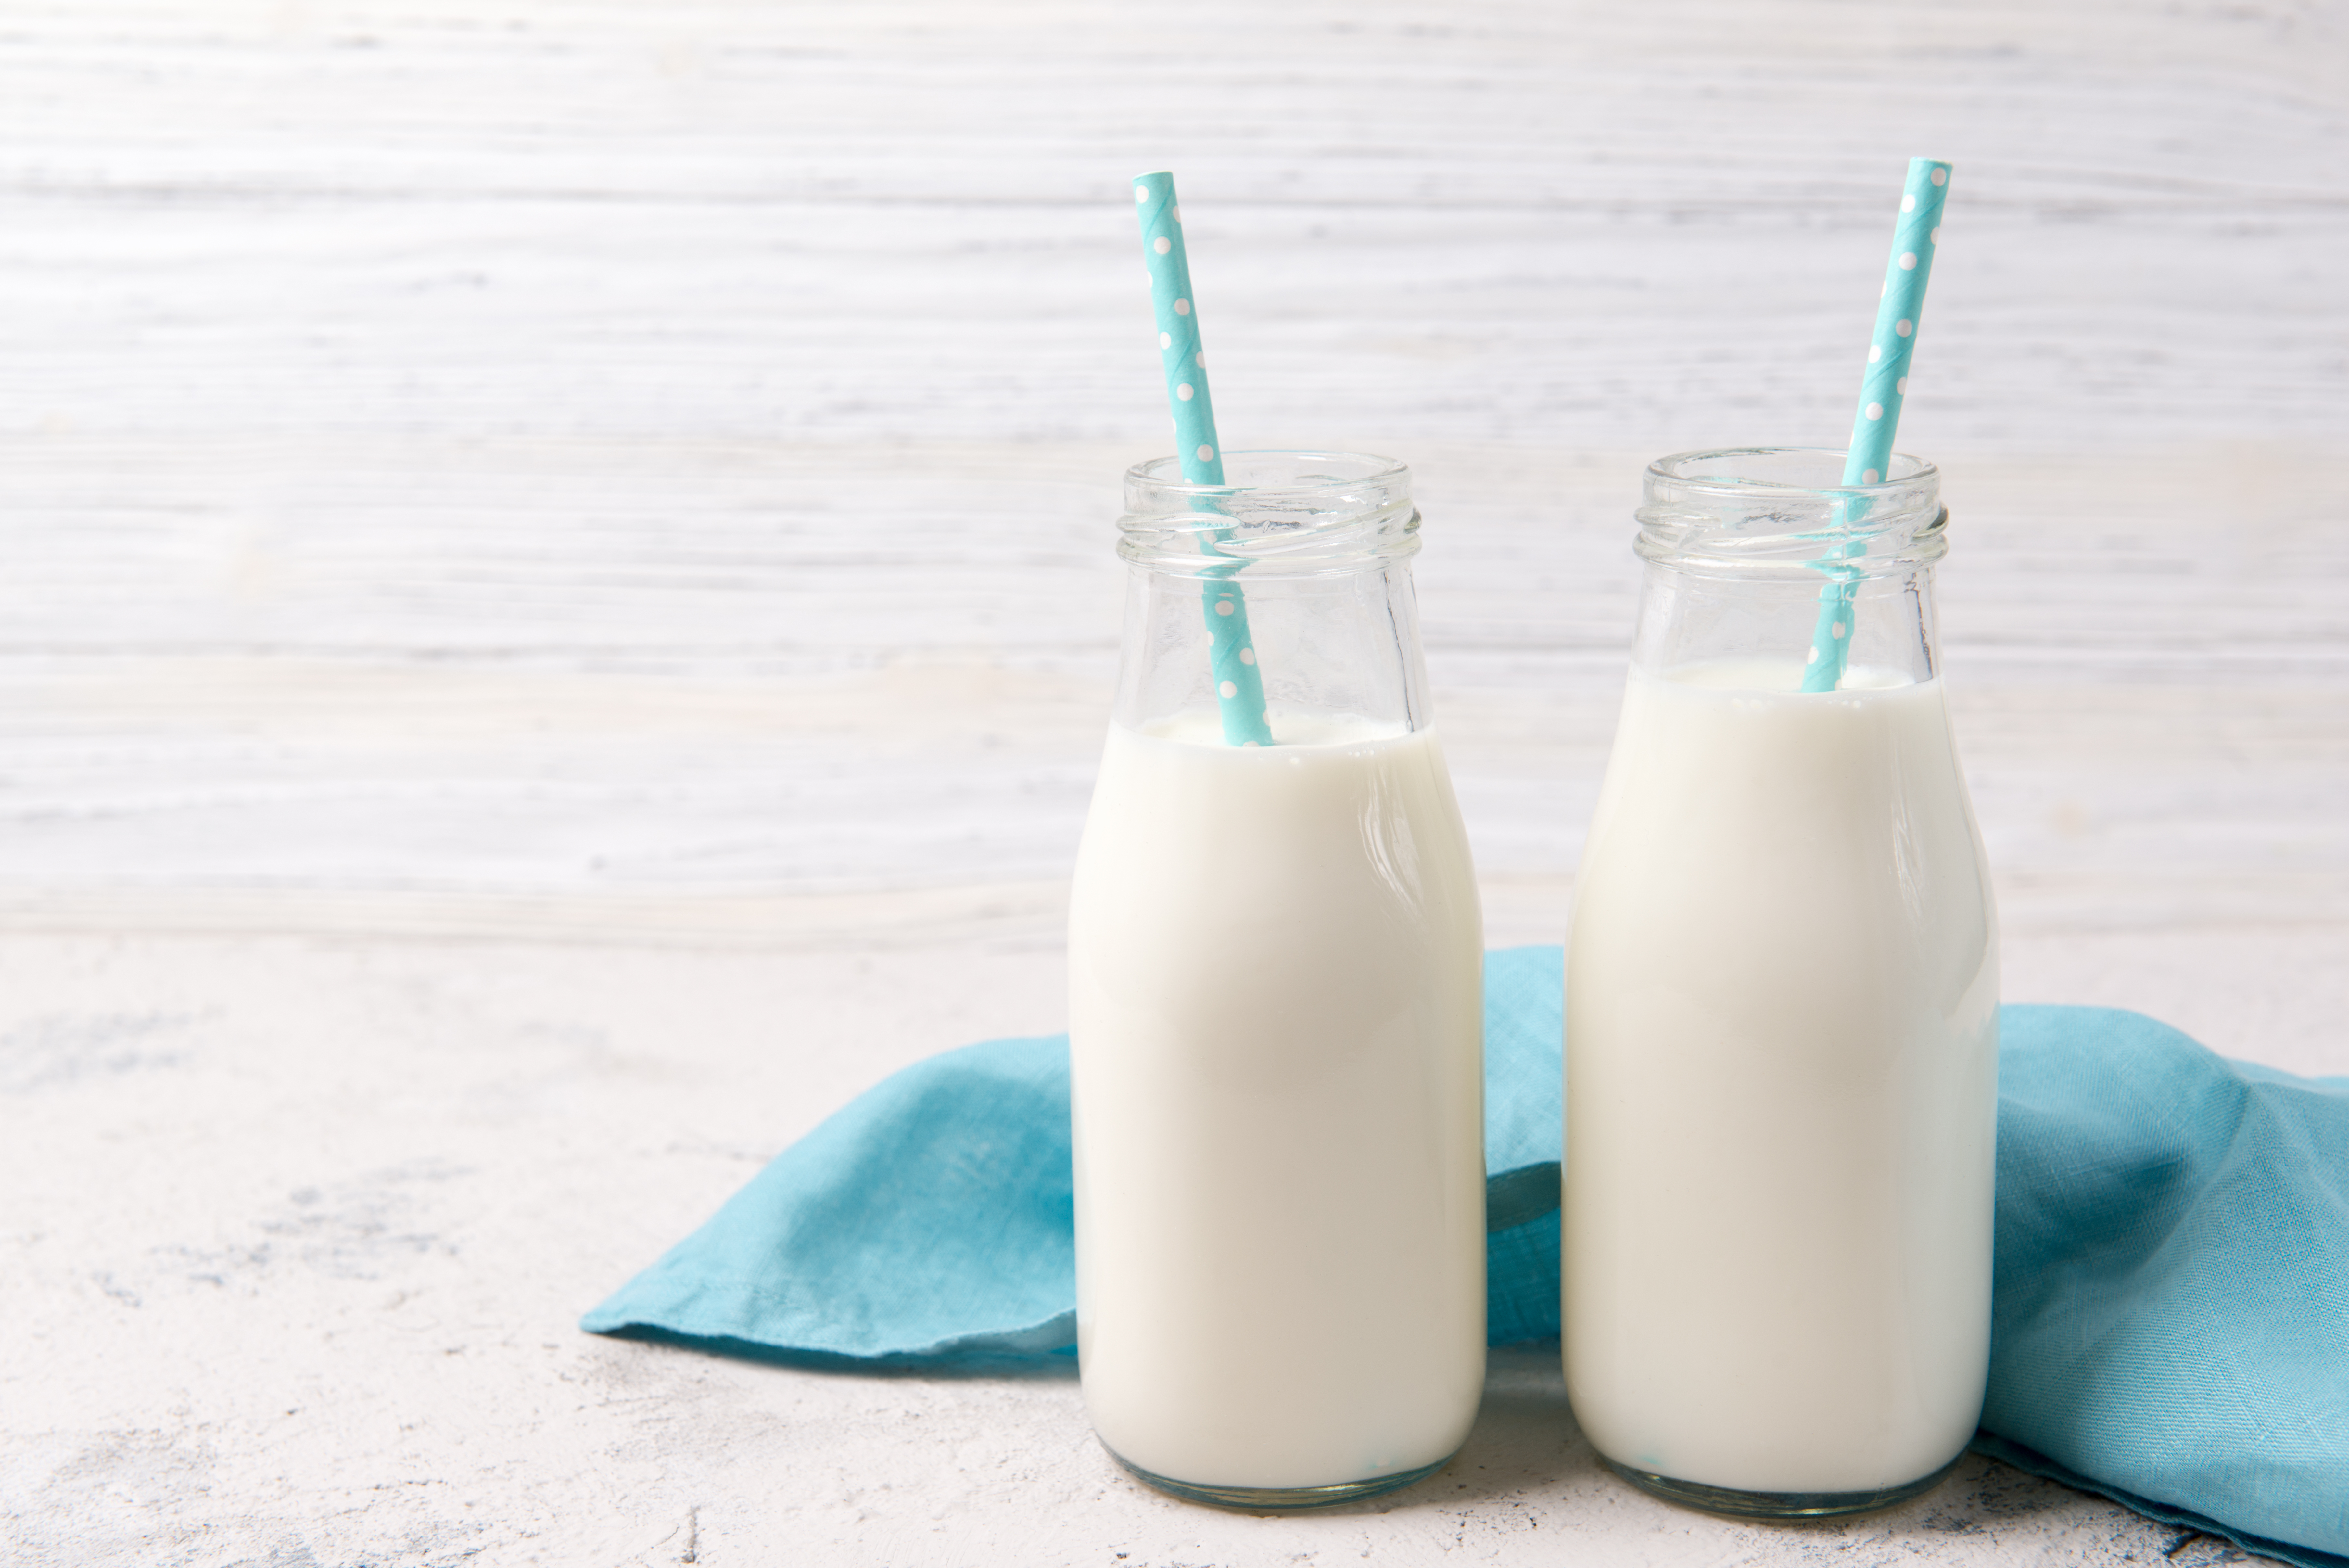 what is better for adults, whole milk or two percent milk? | healthy